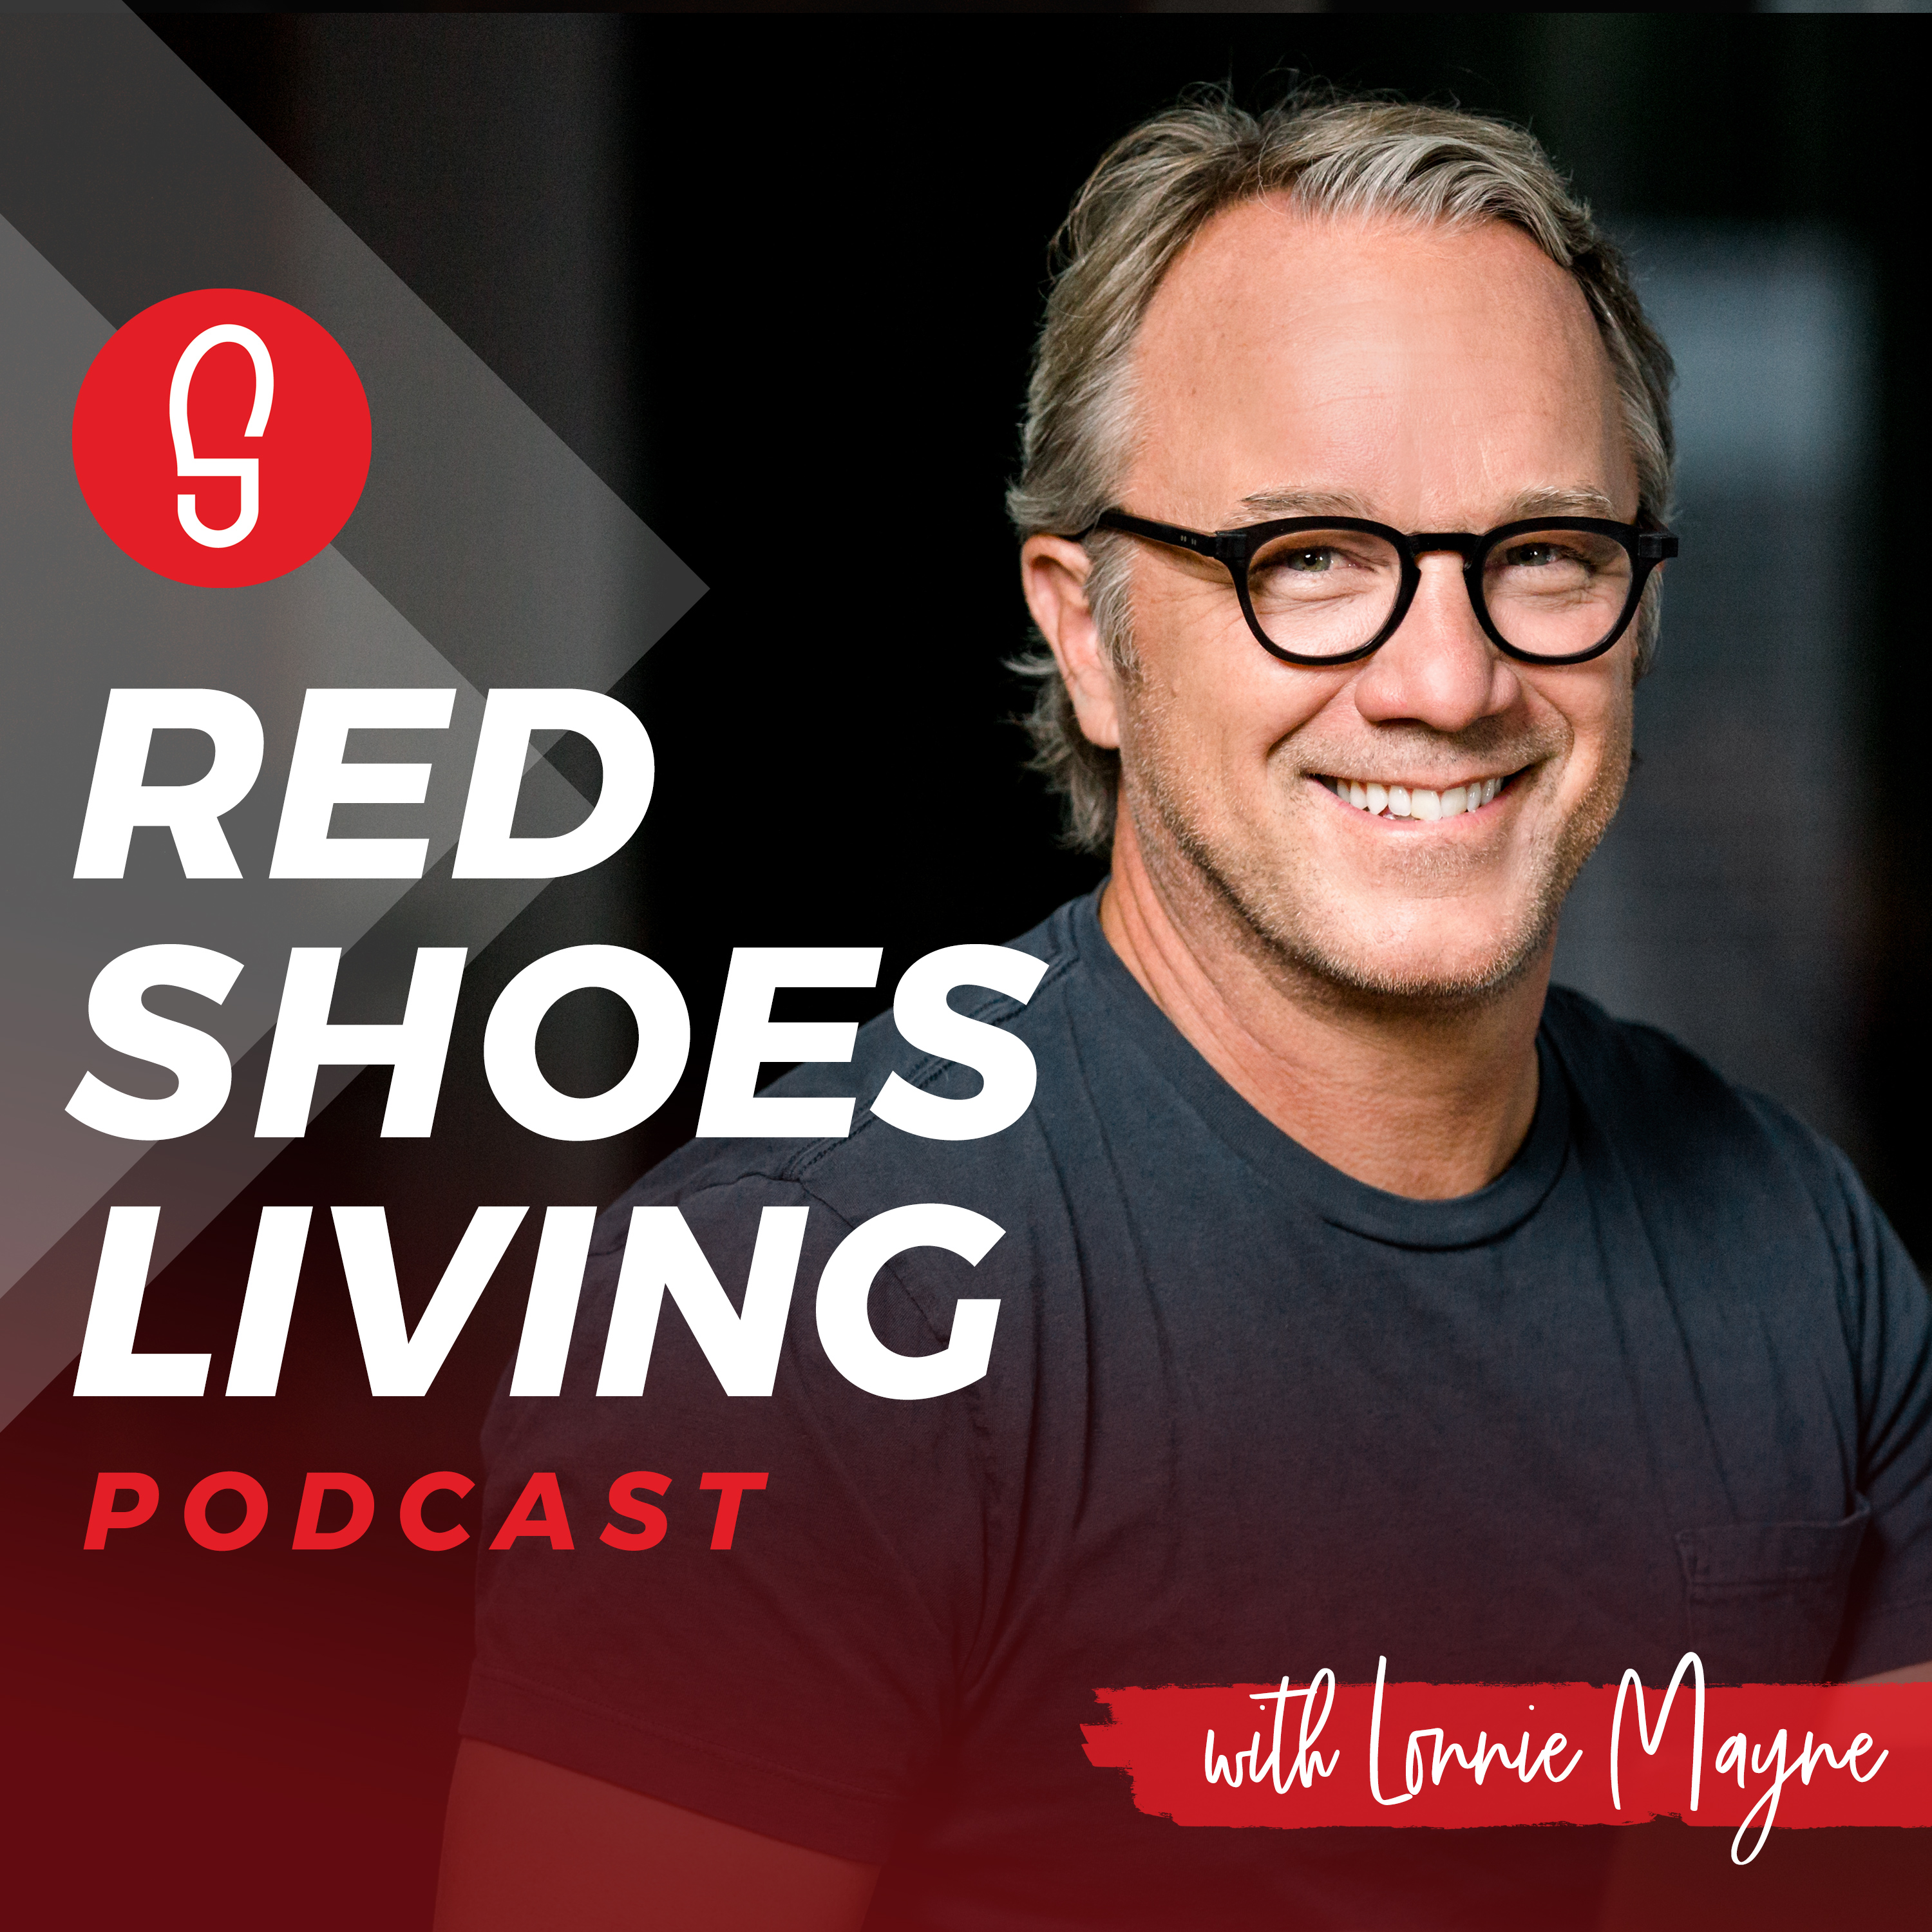 Red Shoes Living Podcast show art